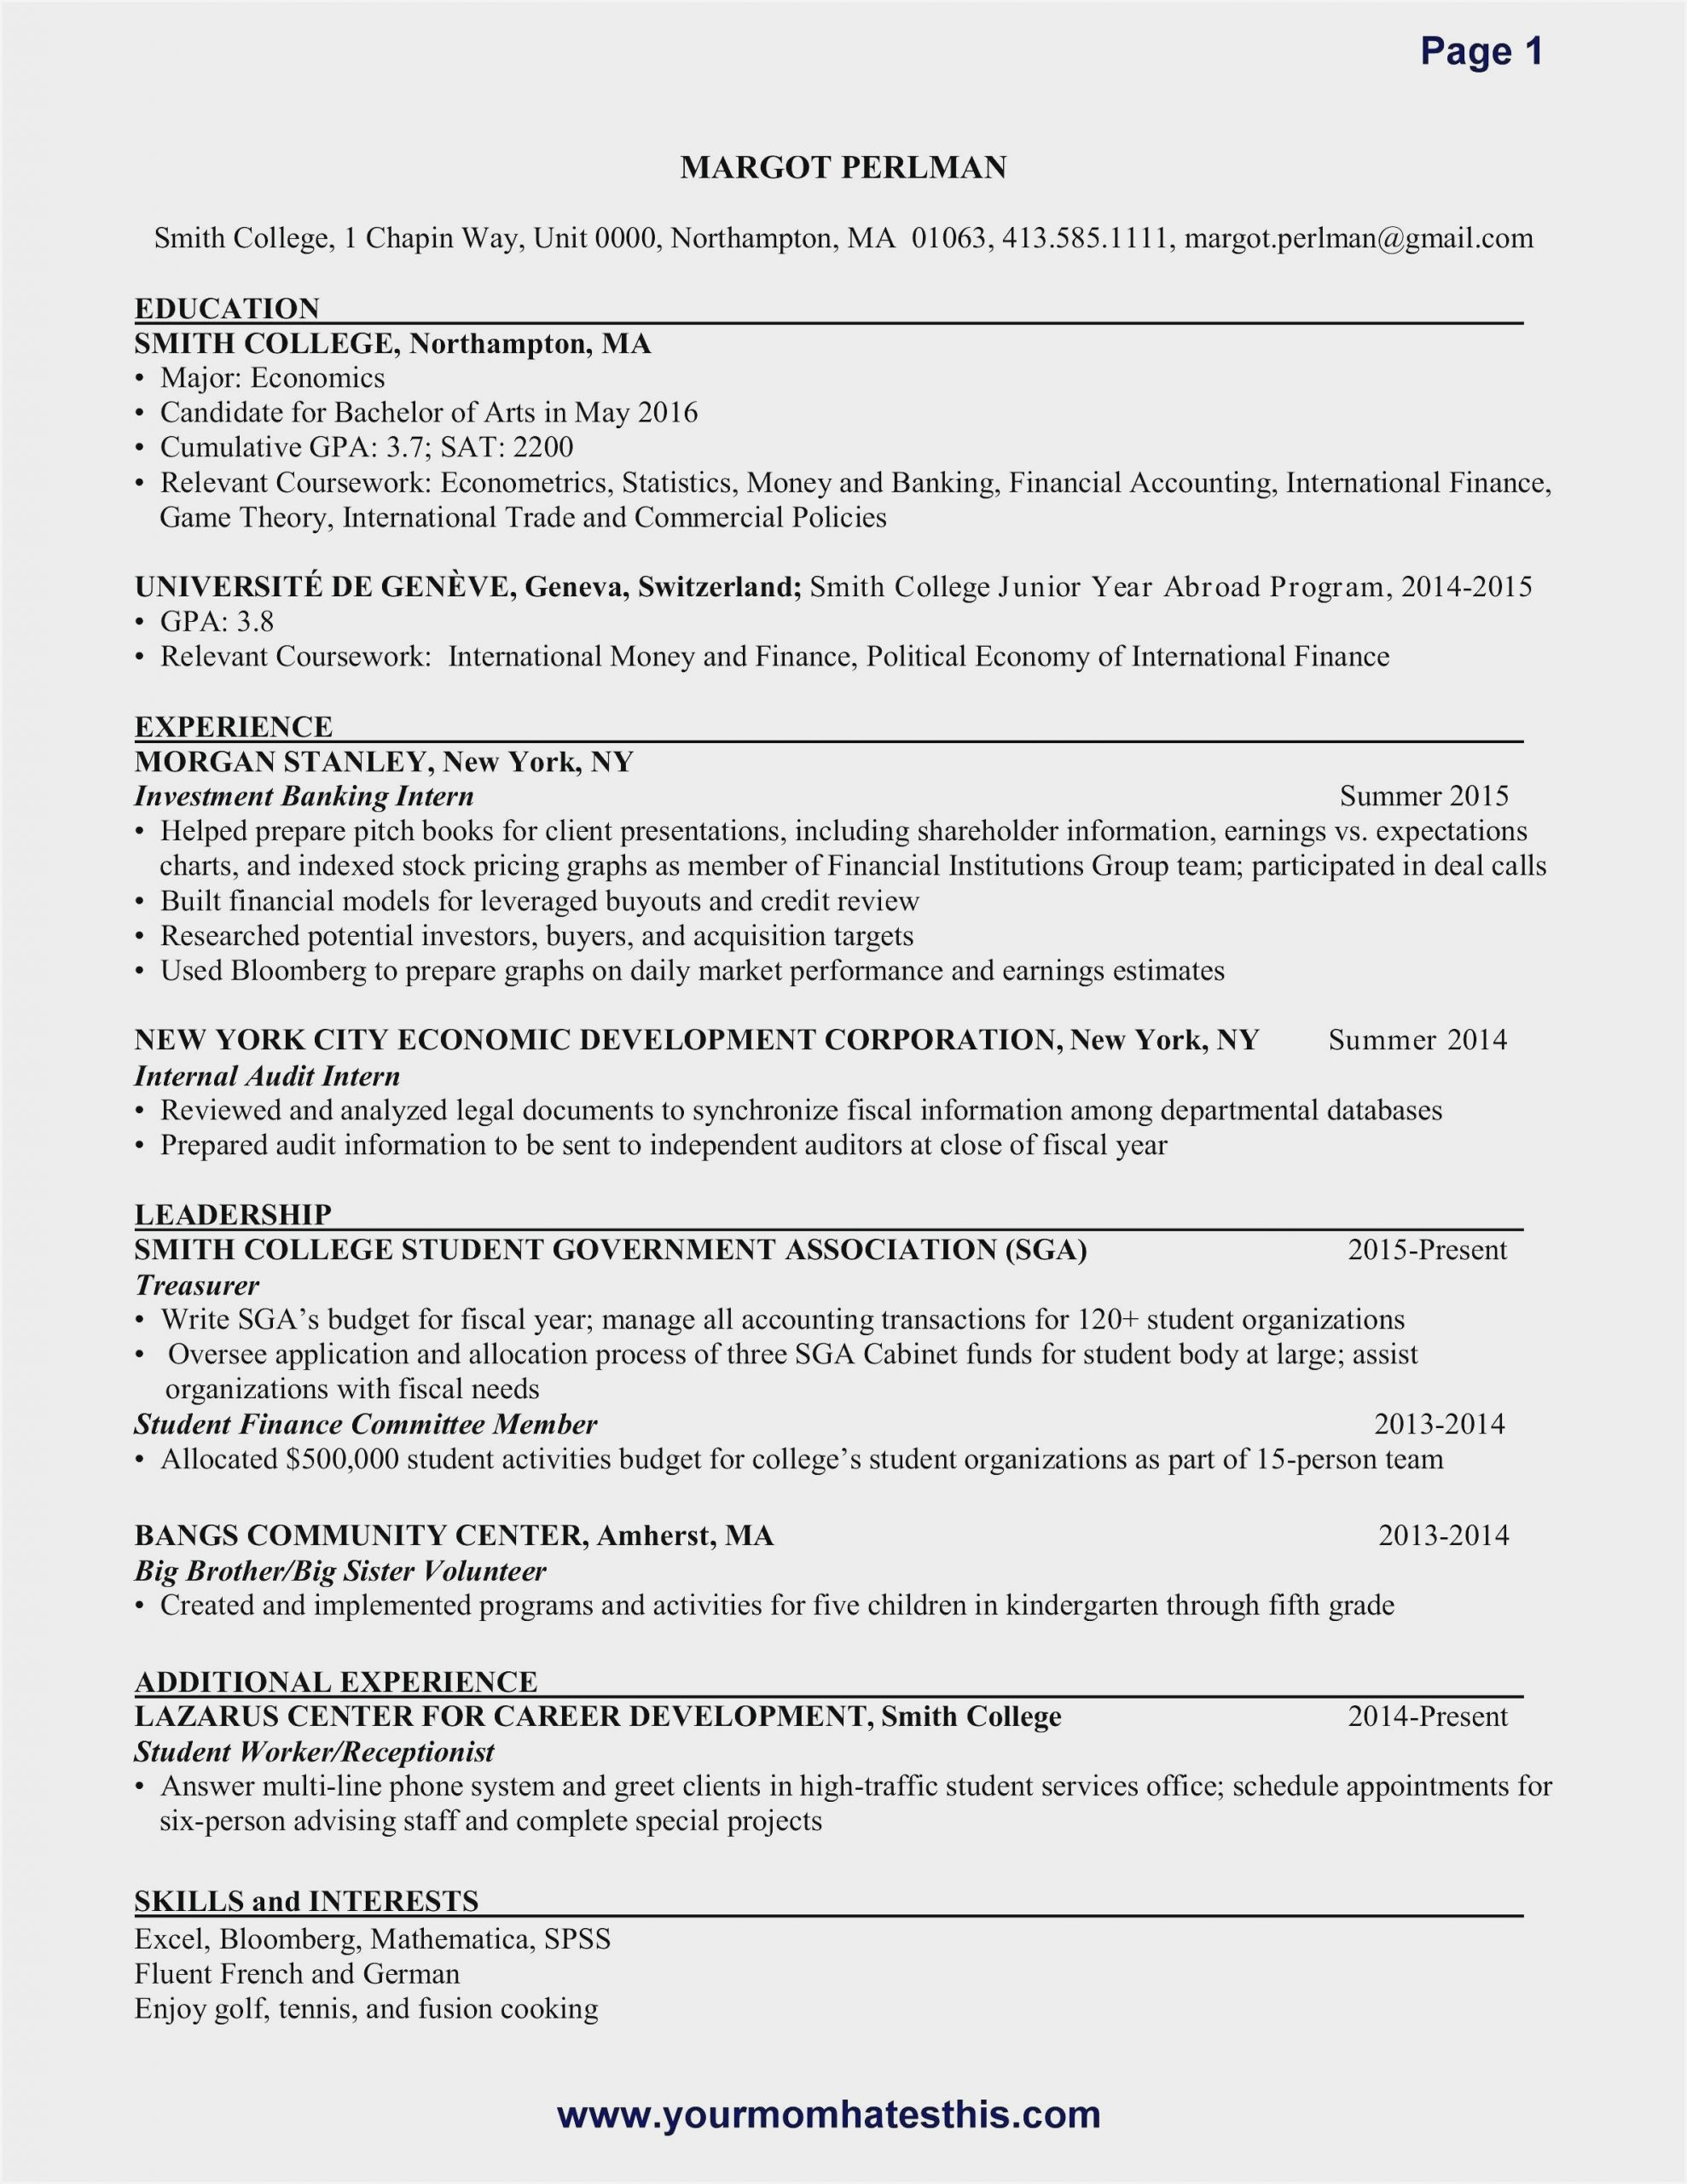 dental assistant resume objective examples sample good for scaled learn adobe indesign Resume Good Objective For Resume For Dental Assistant